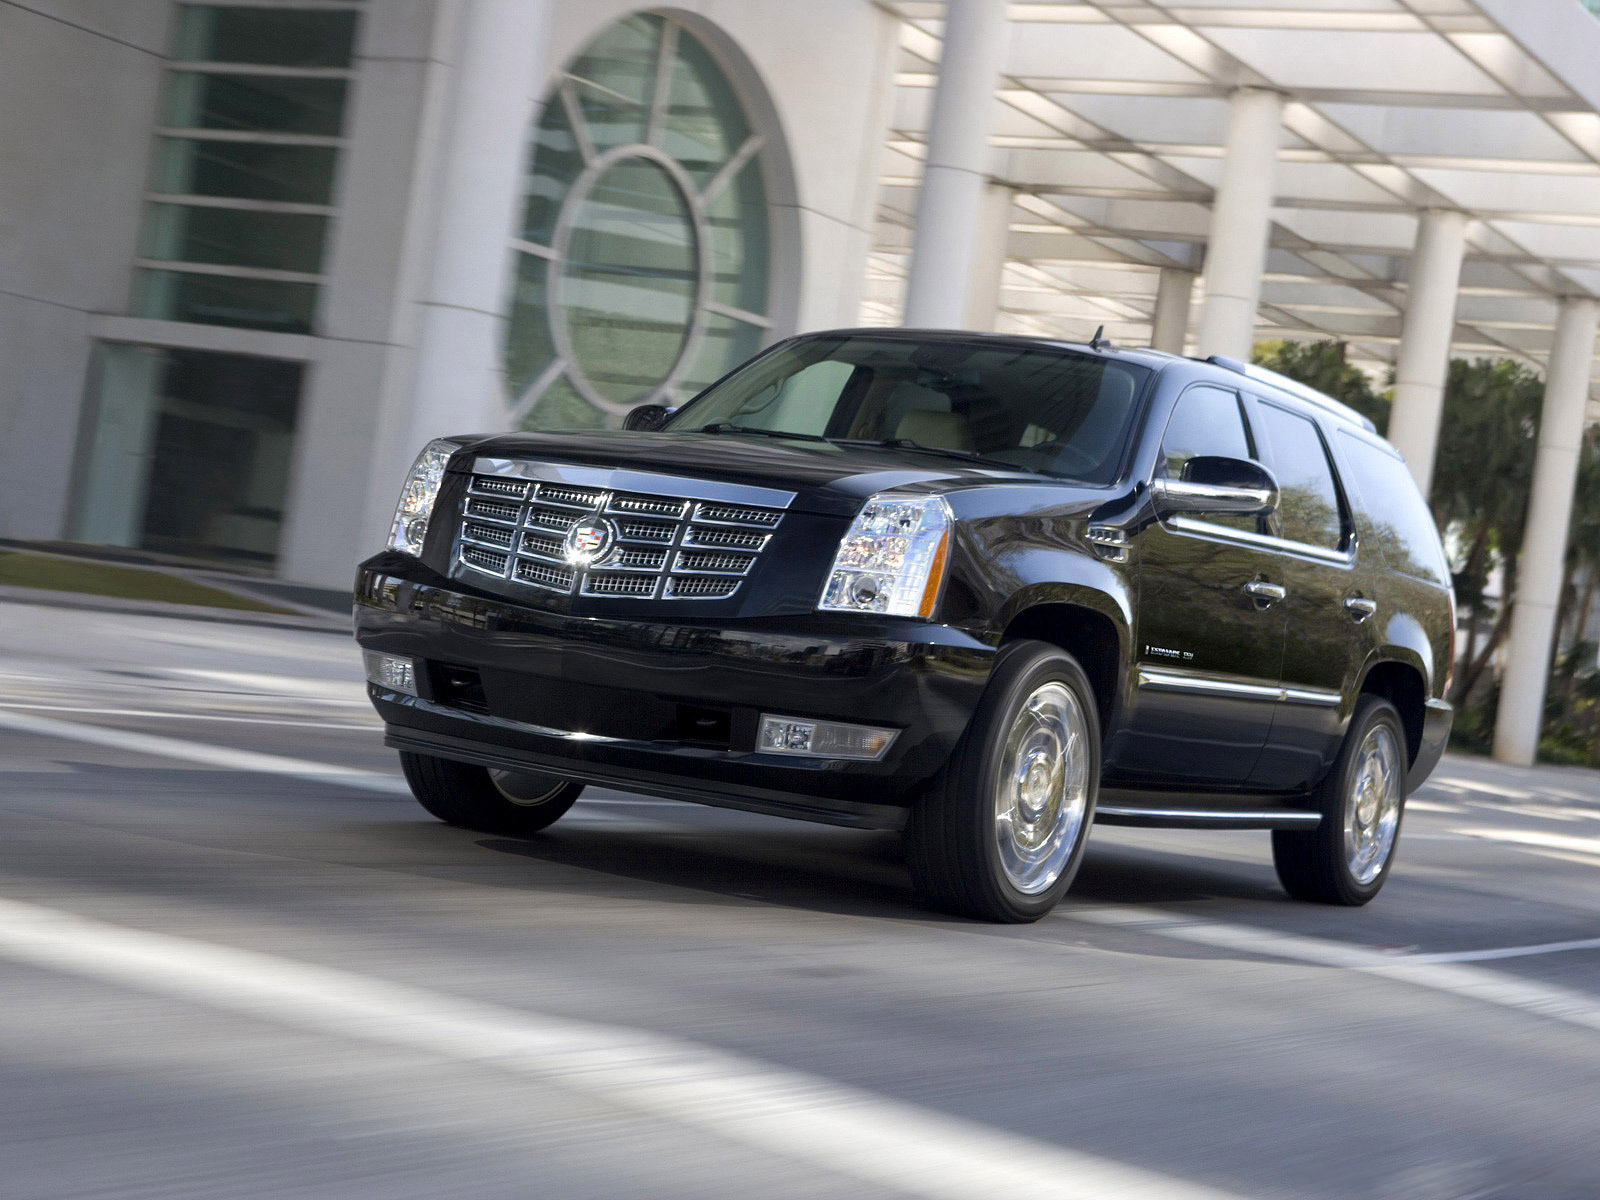 Cadillac Escalade photo 34635